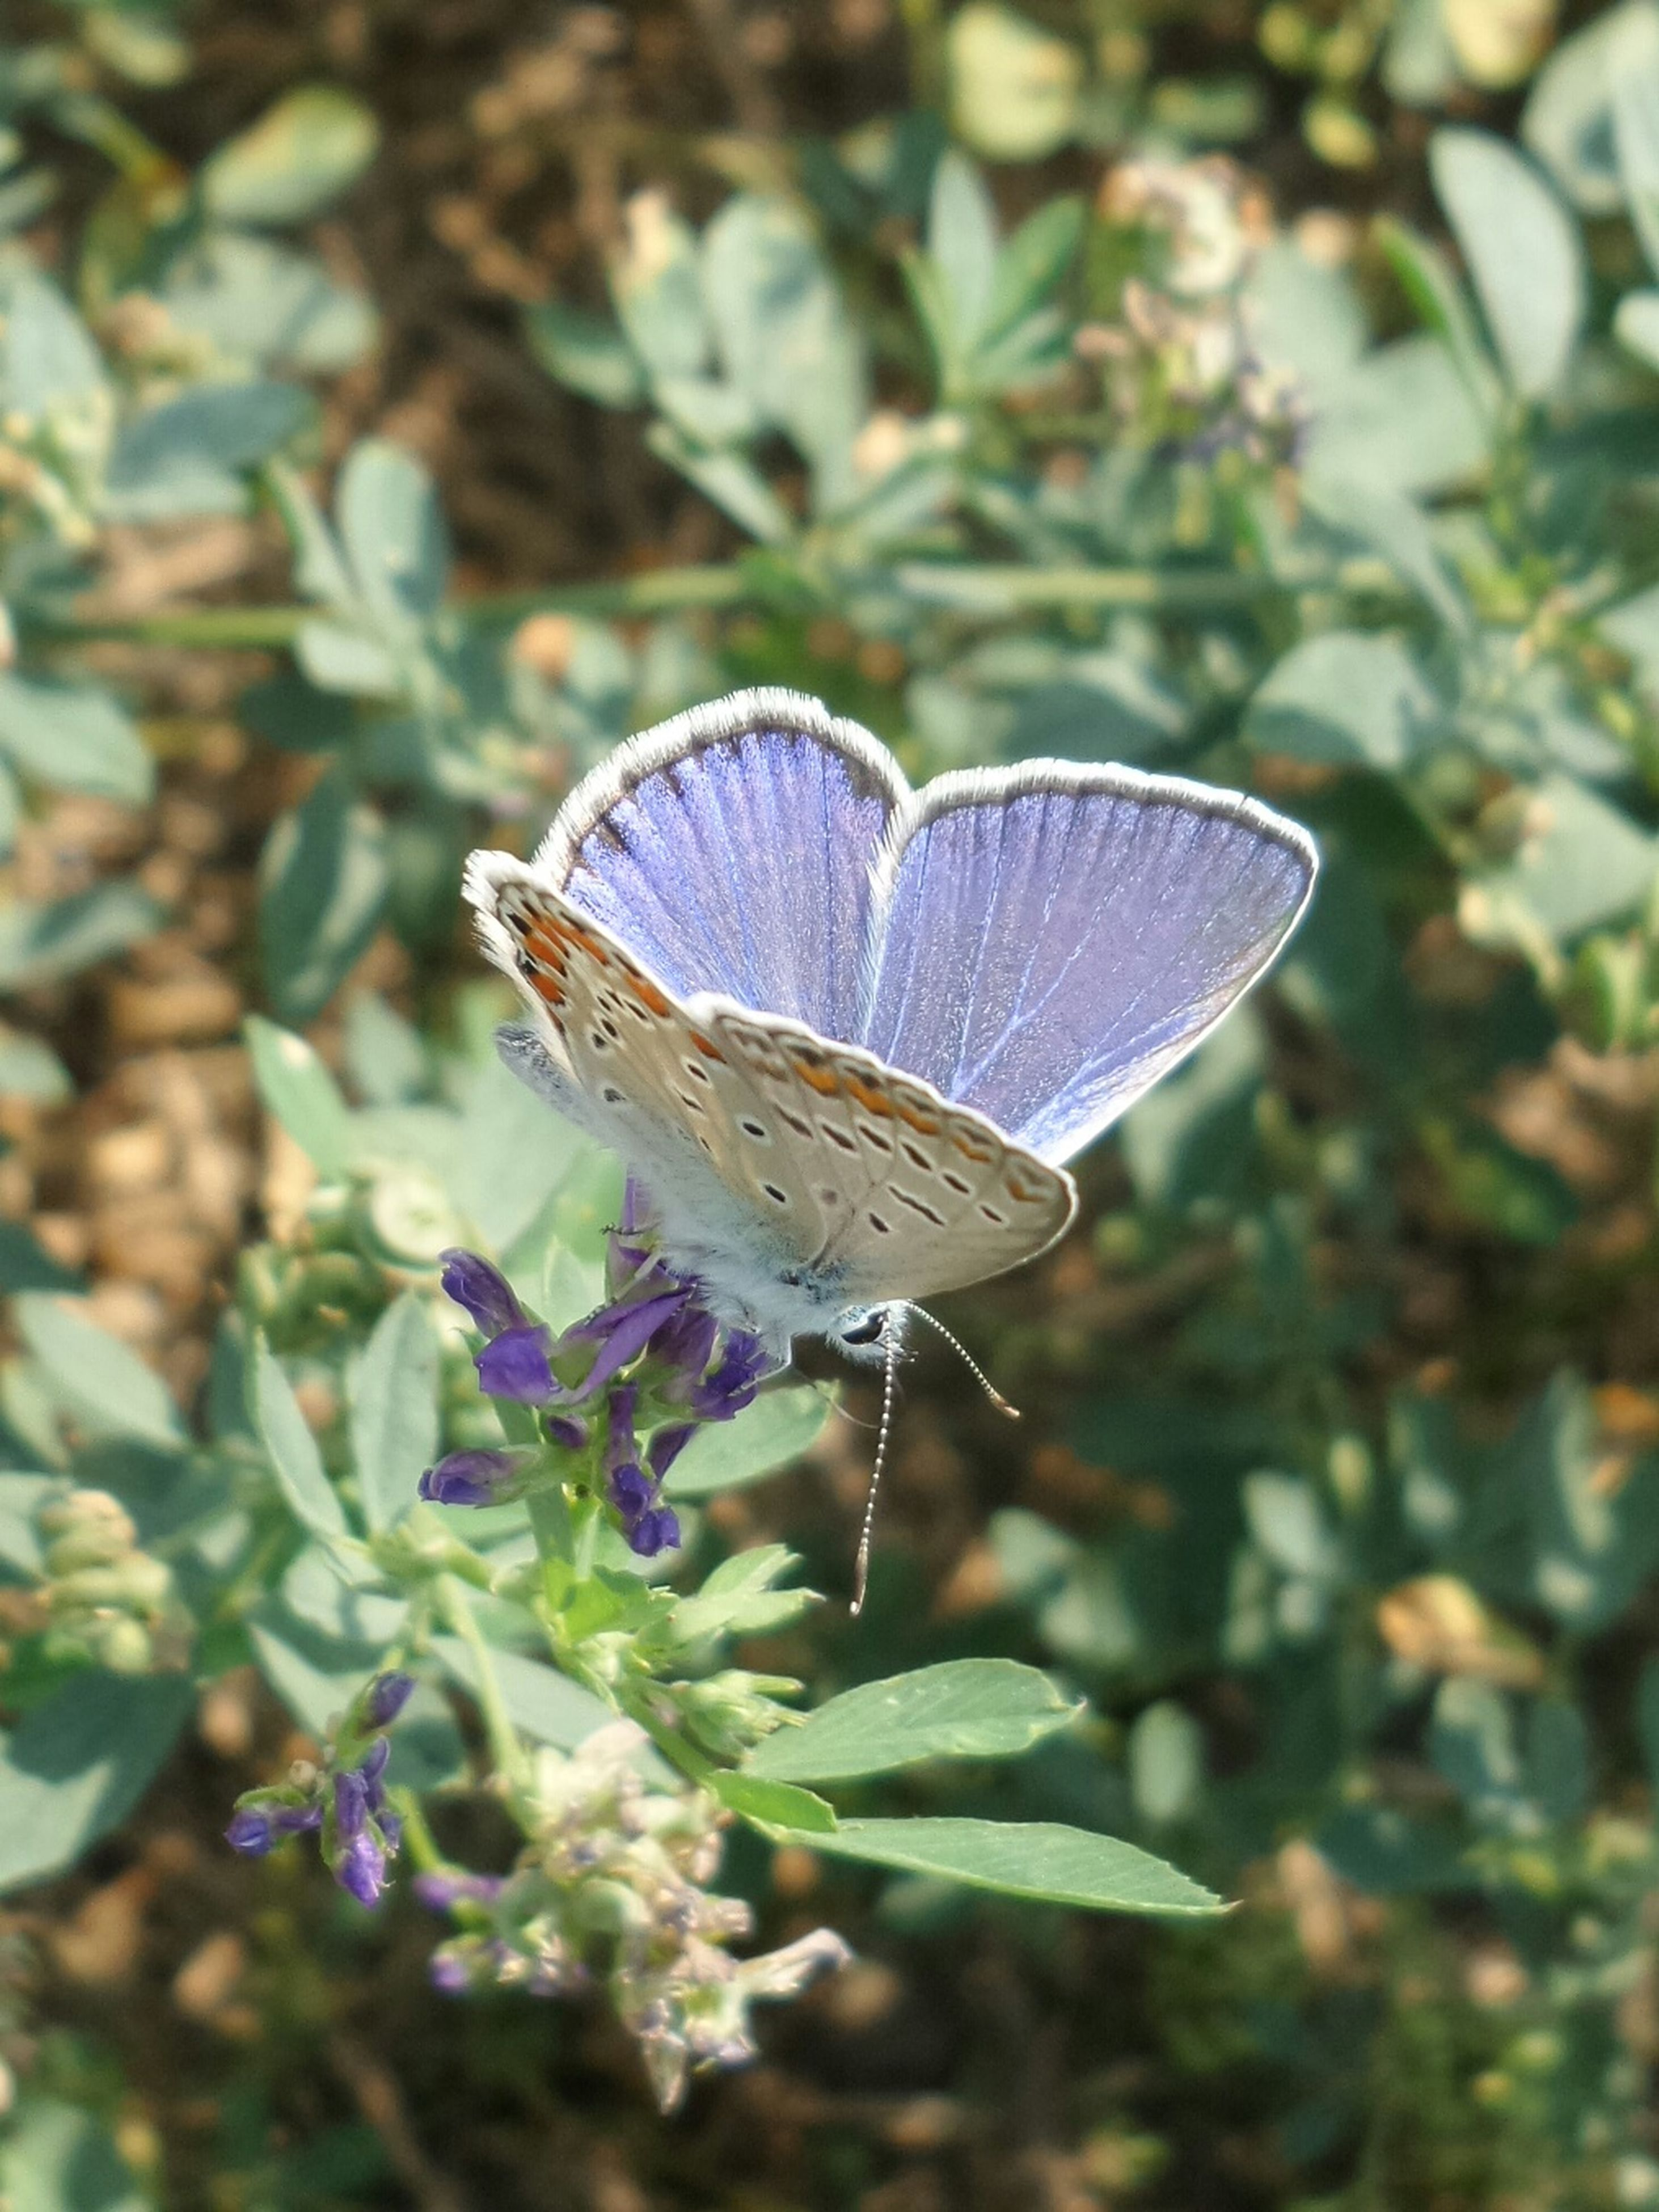 insect, butterfly, one animal, butterfly - insect, animal themes, animals in the wild, plant, nature, fragility, leaf, no people, growth, beauty in nature, day, outdoors, close-up, flower, spread wings, freshness, perching